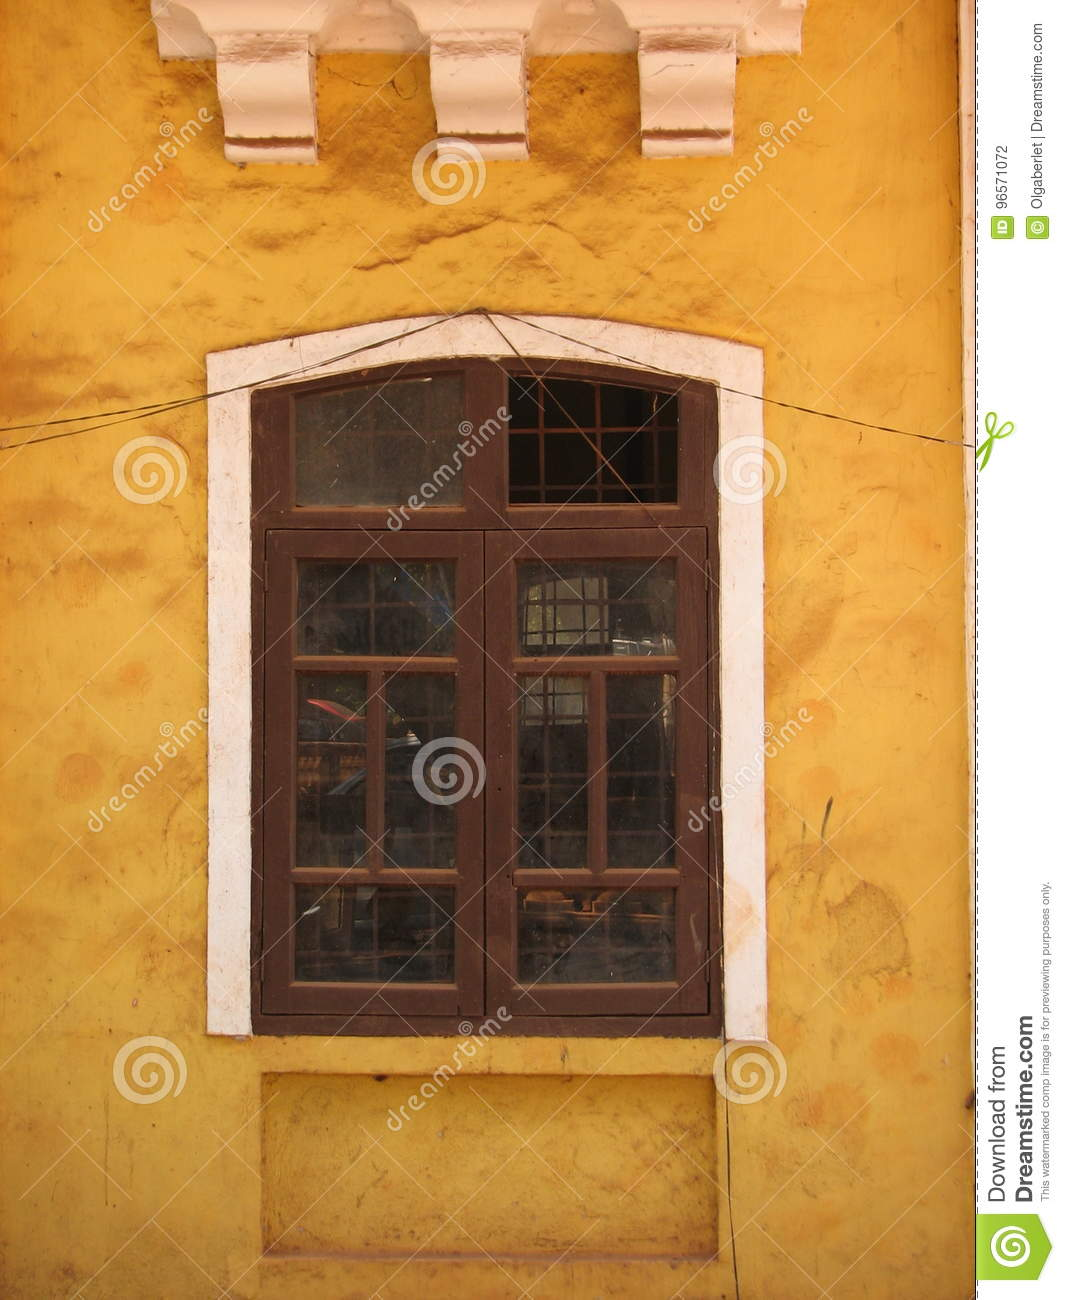 old window with terra-cotta tiled roof. An architectural details from Goa, India.